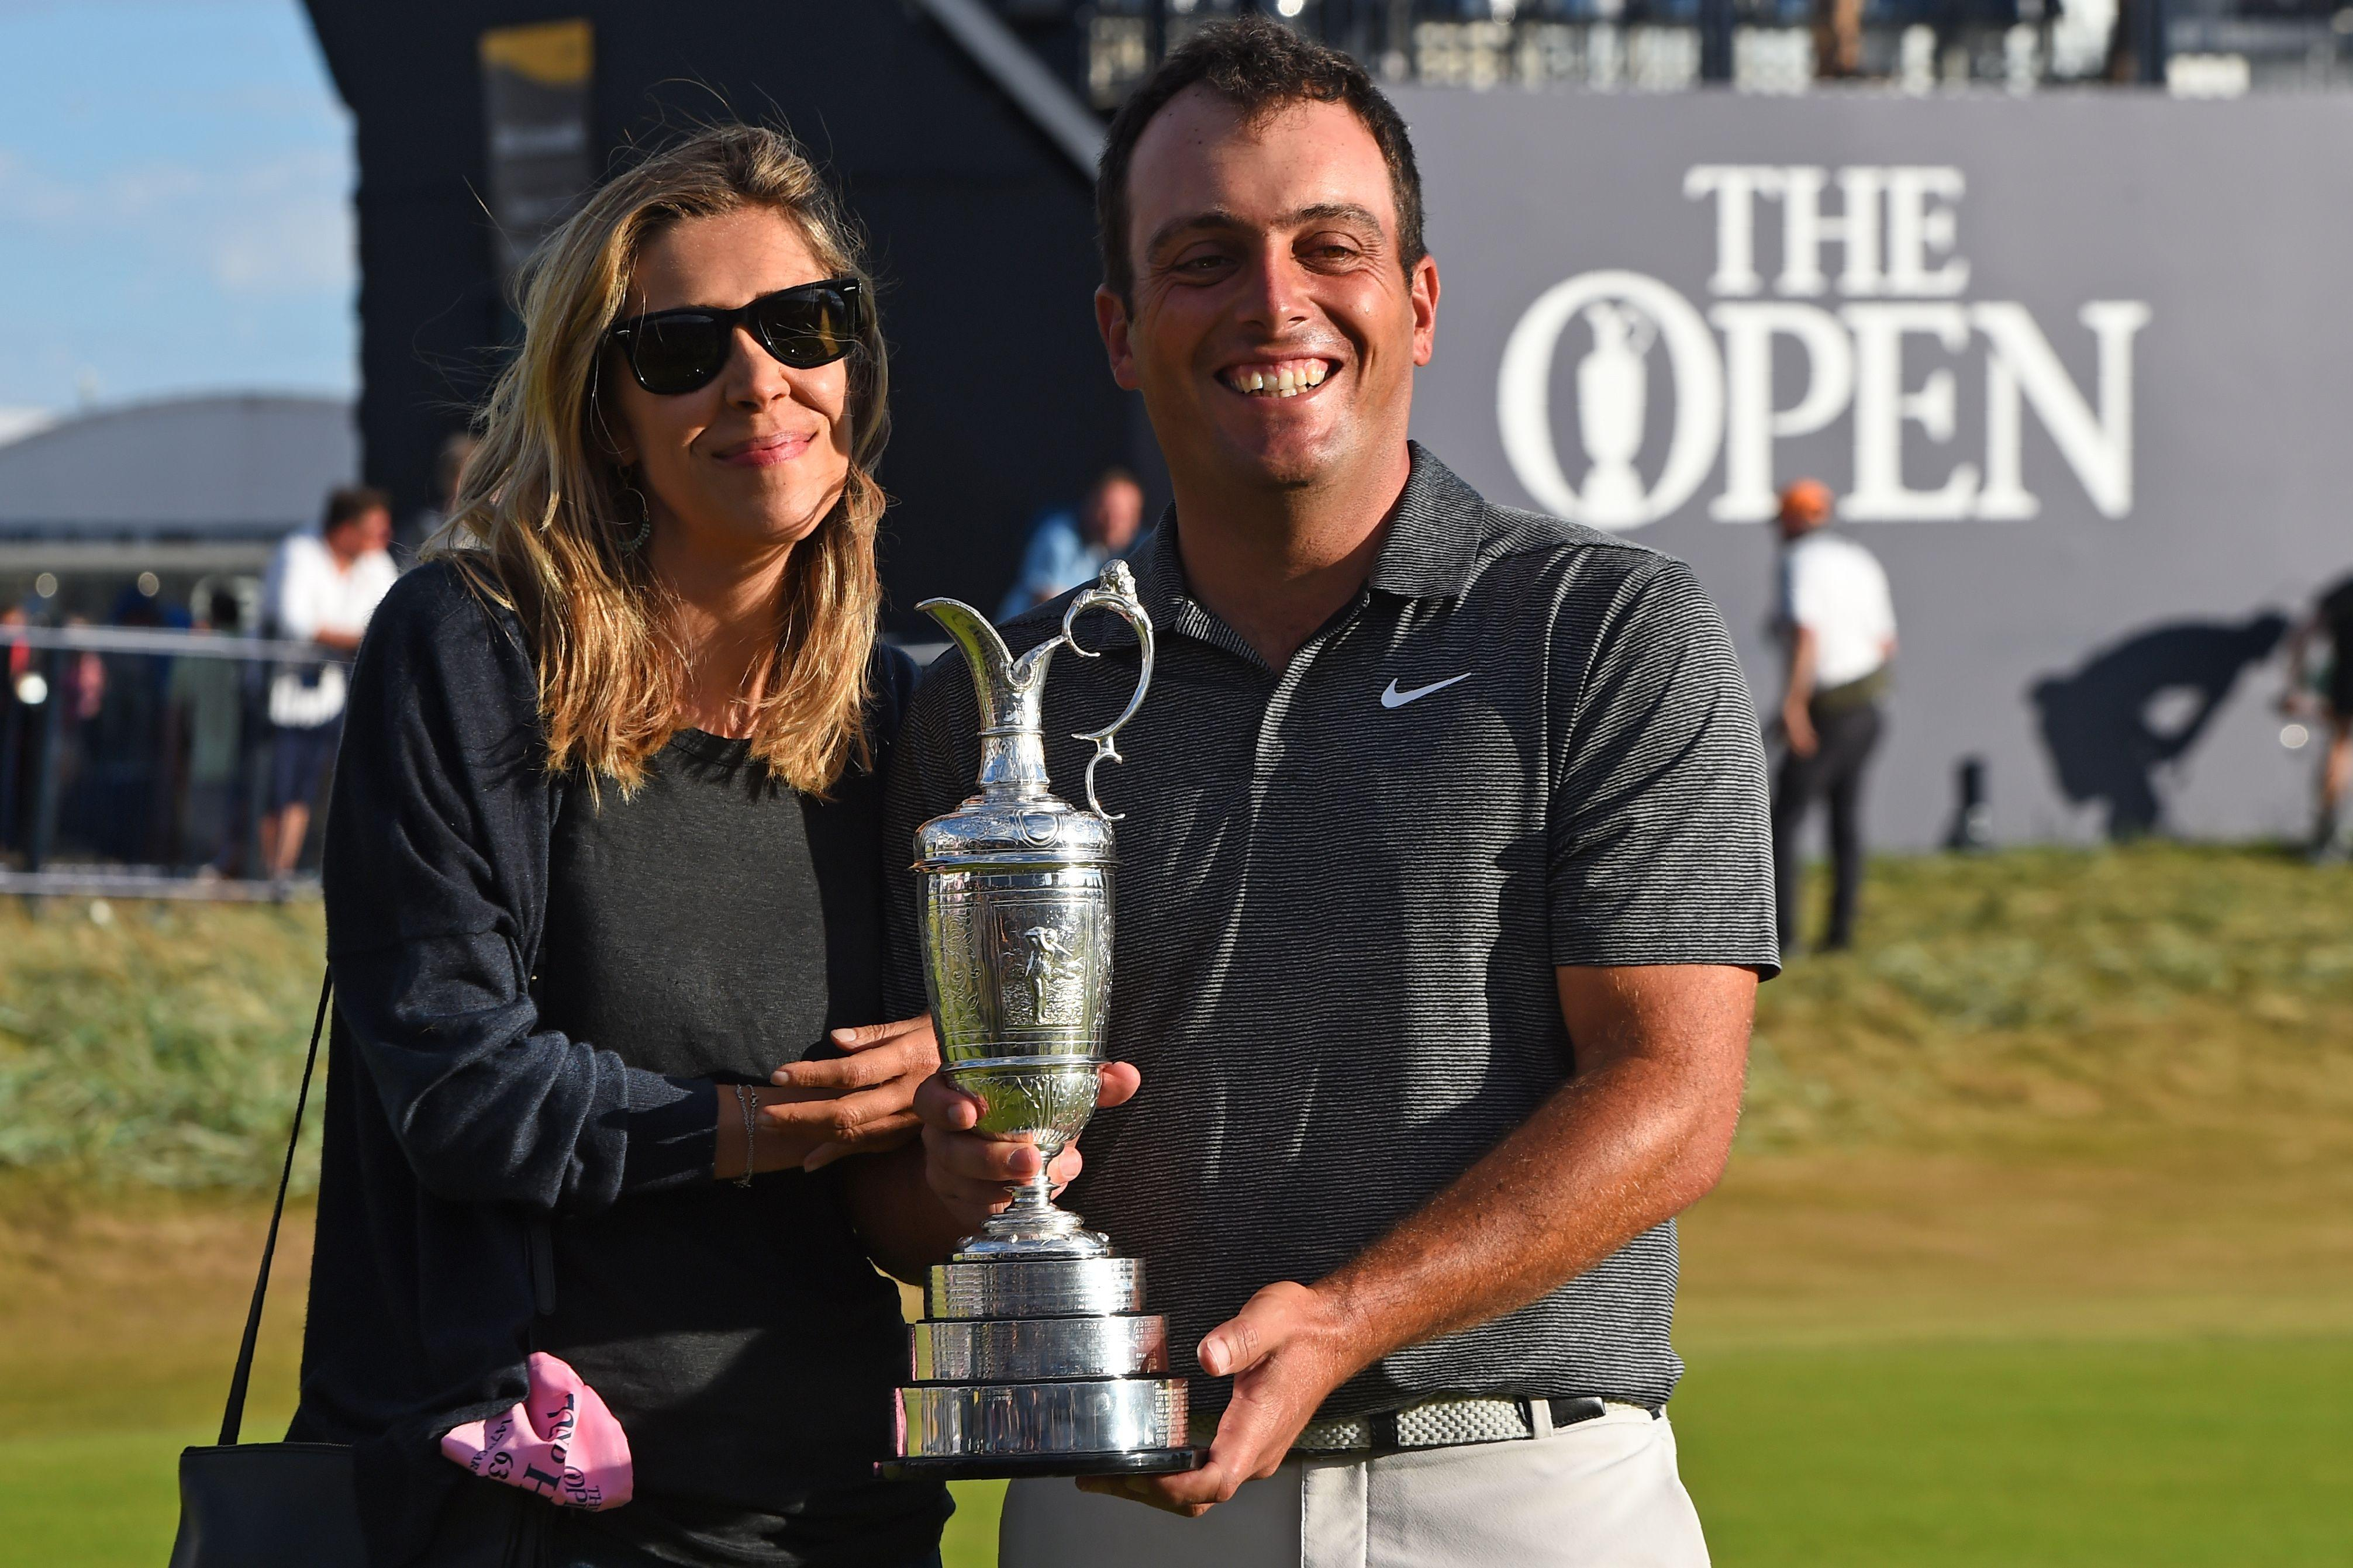 Molinari's win was the first ever in a Major by an Italian